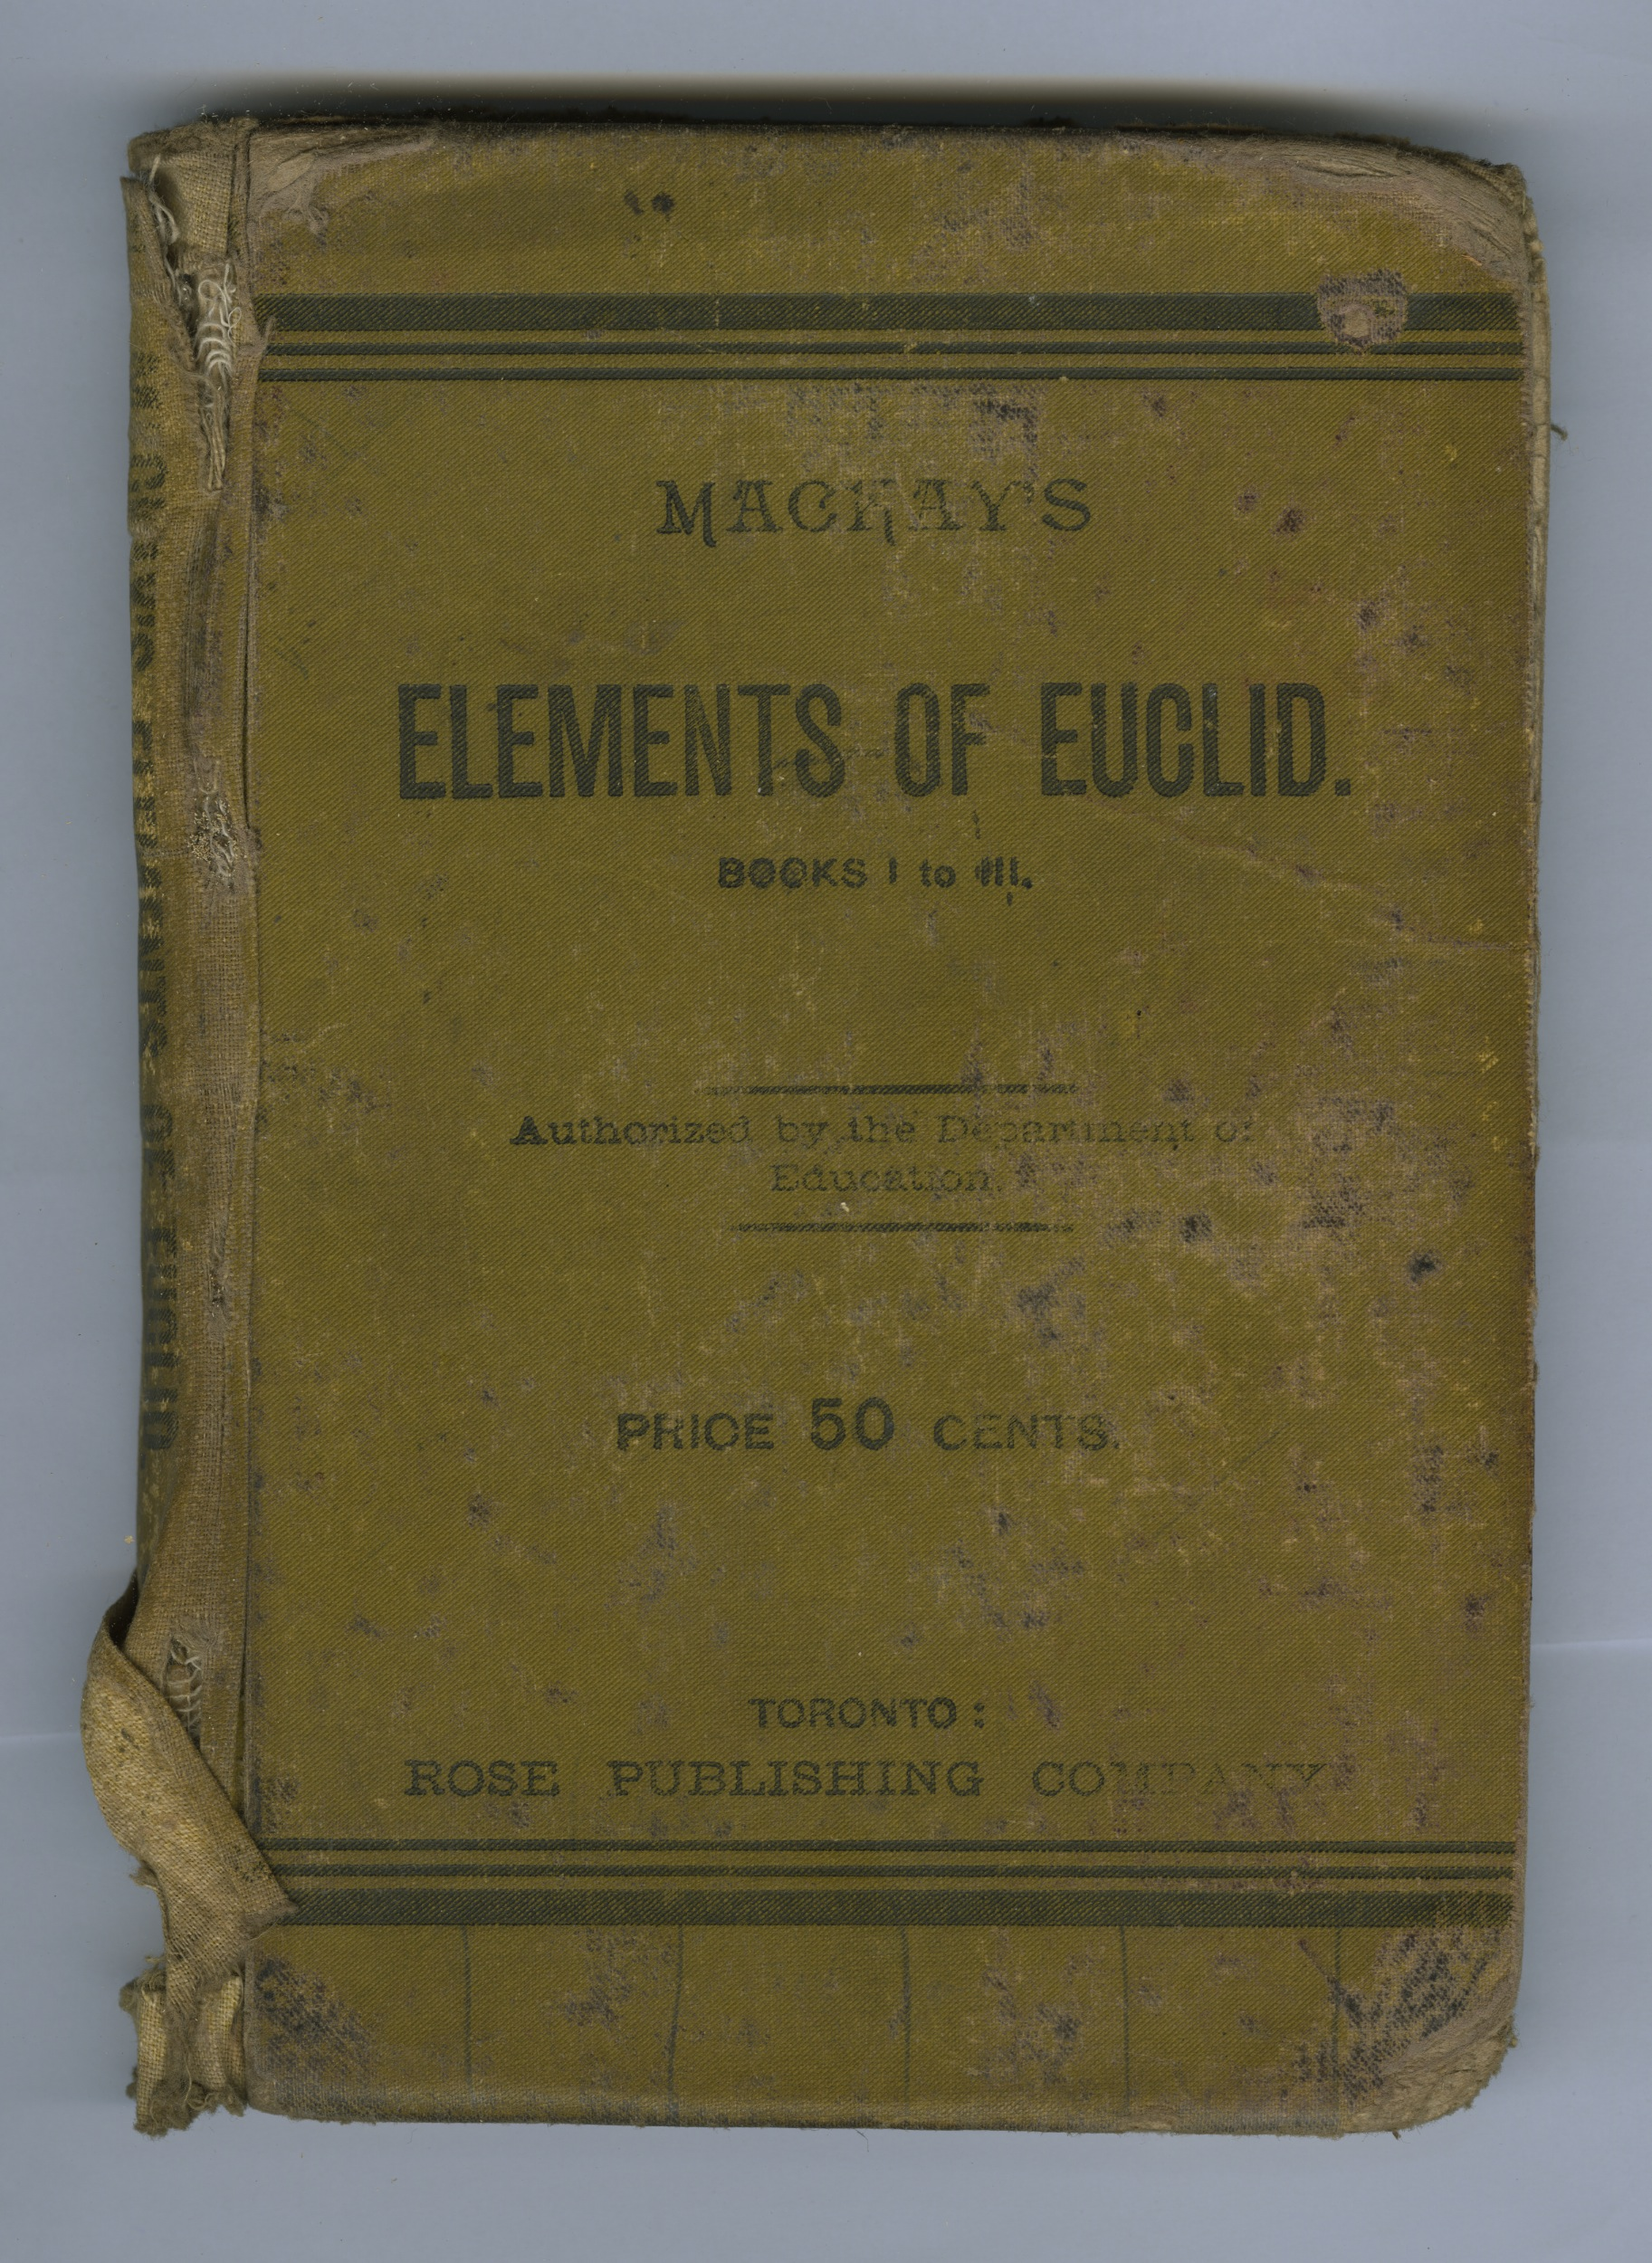 Elements of Euclid cover